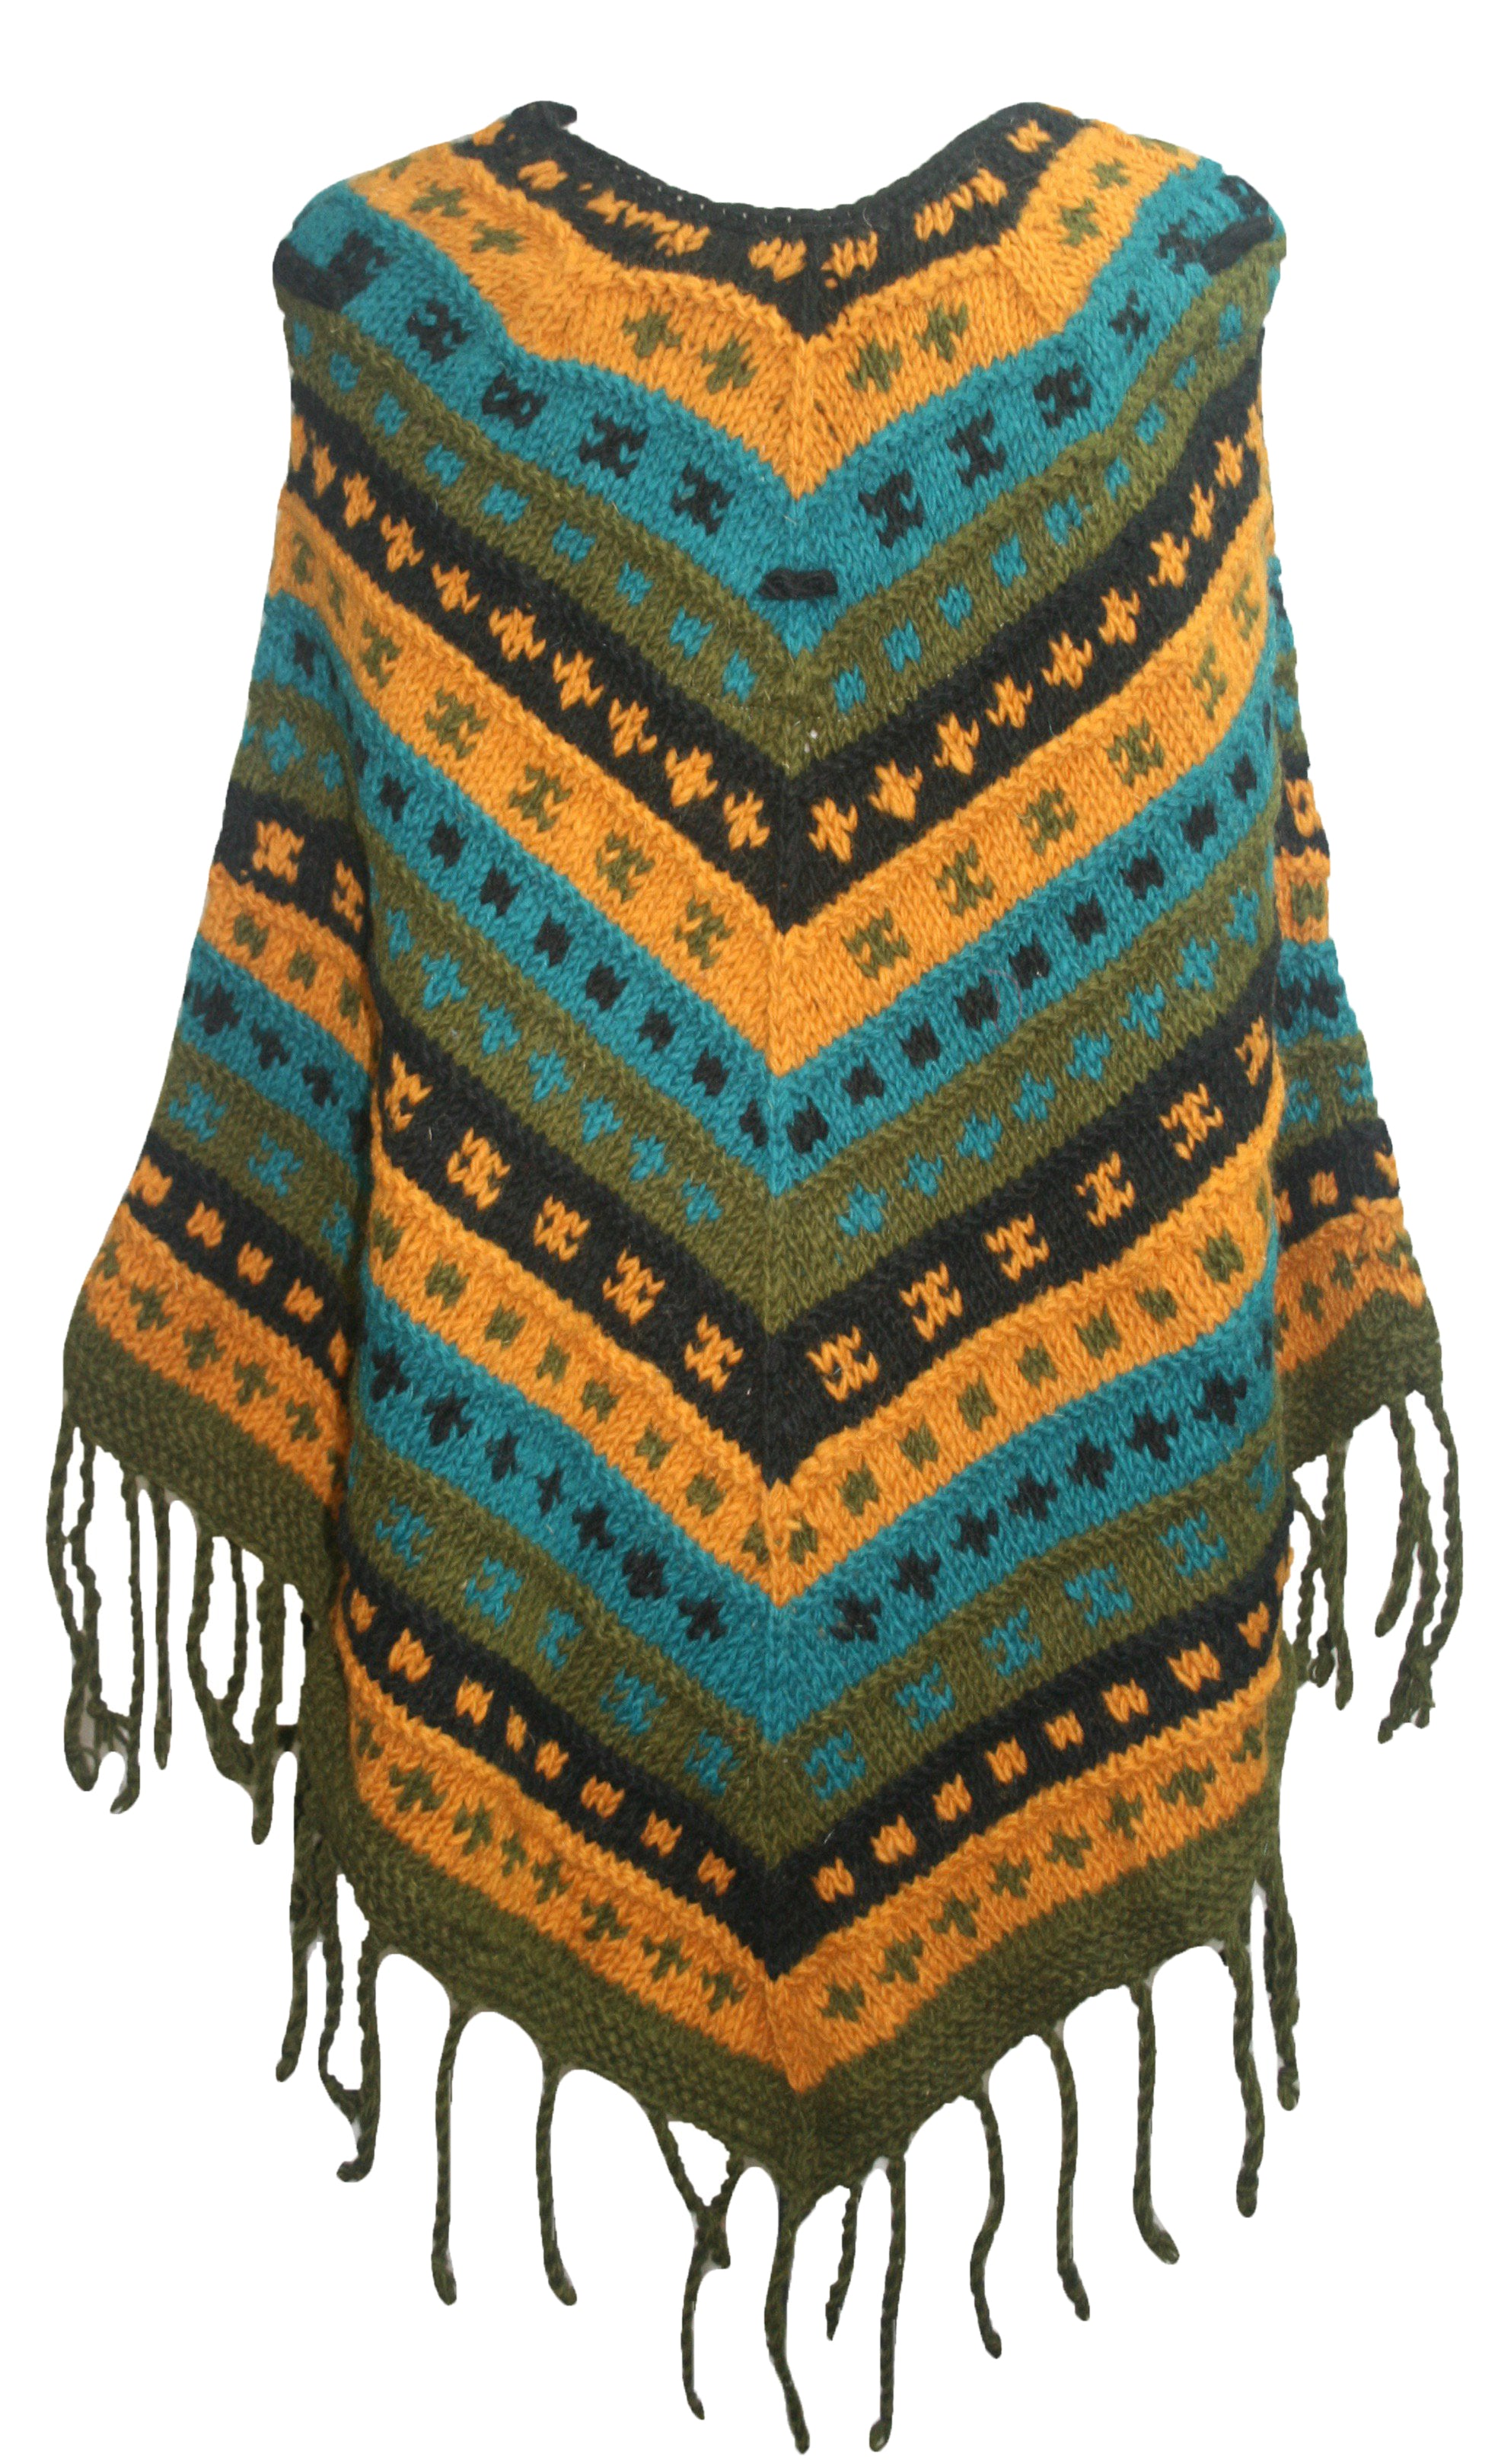 PN 200 Himalayan Thick Sheep Wool Hand Knitted Poncho - Agan Traders, PN 200 10